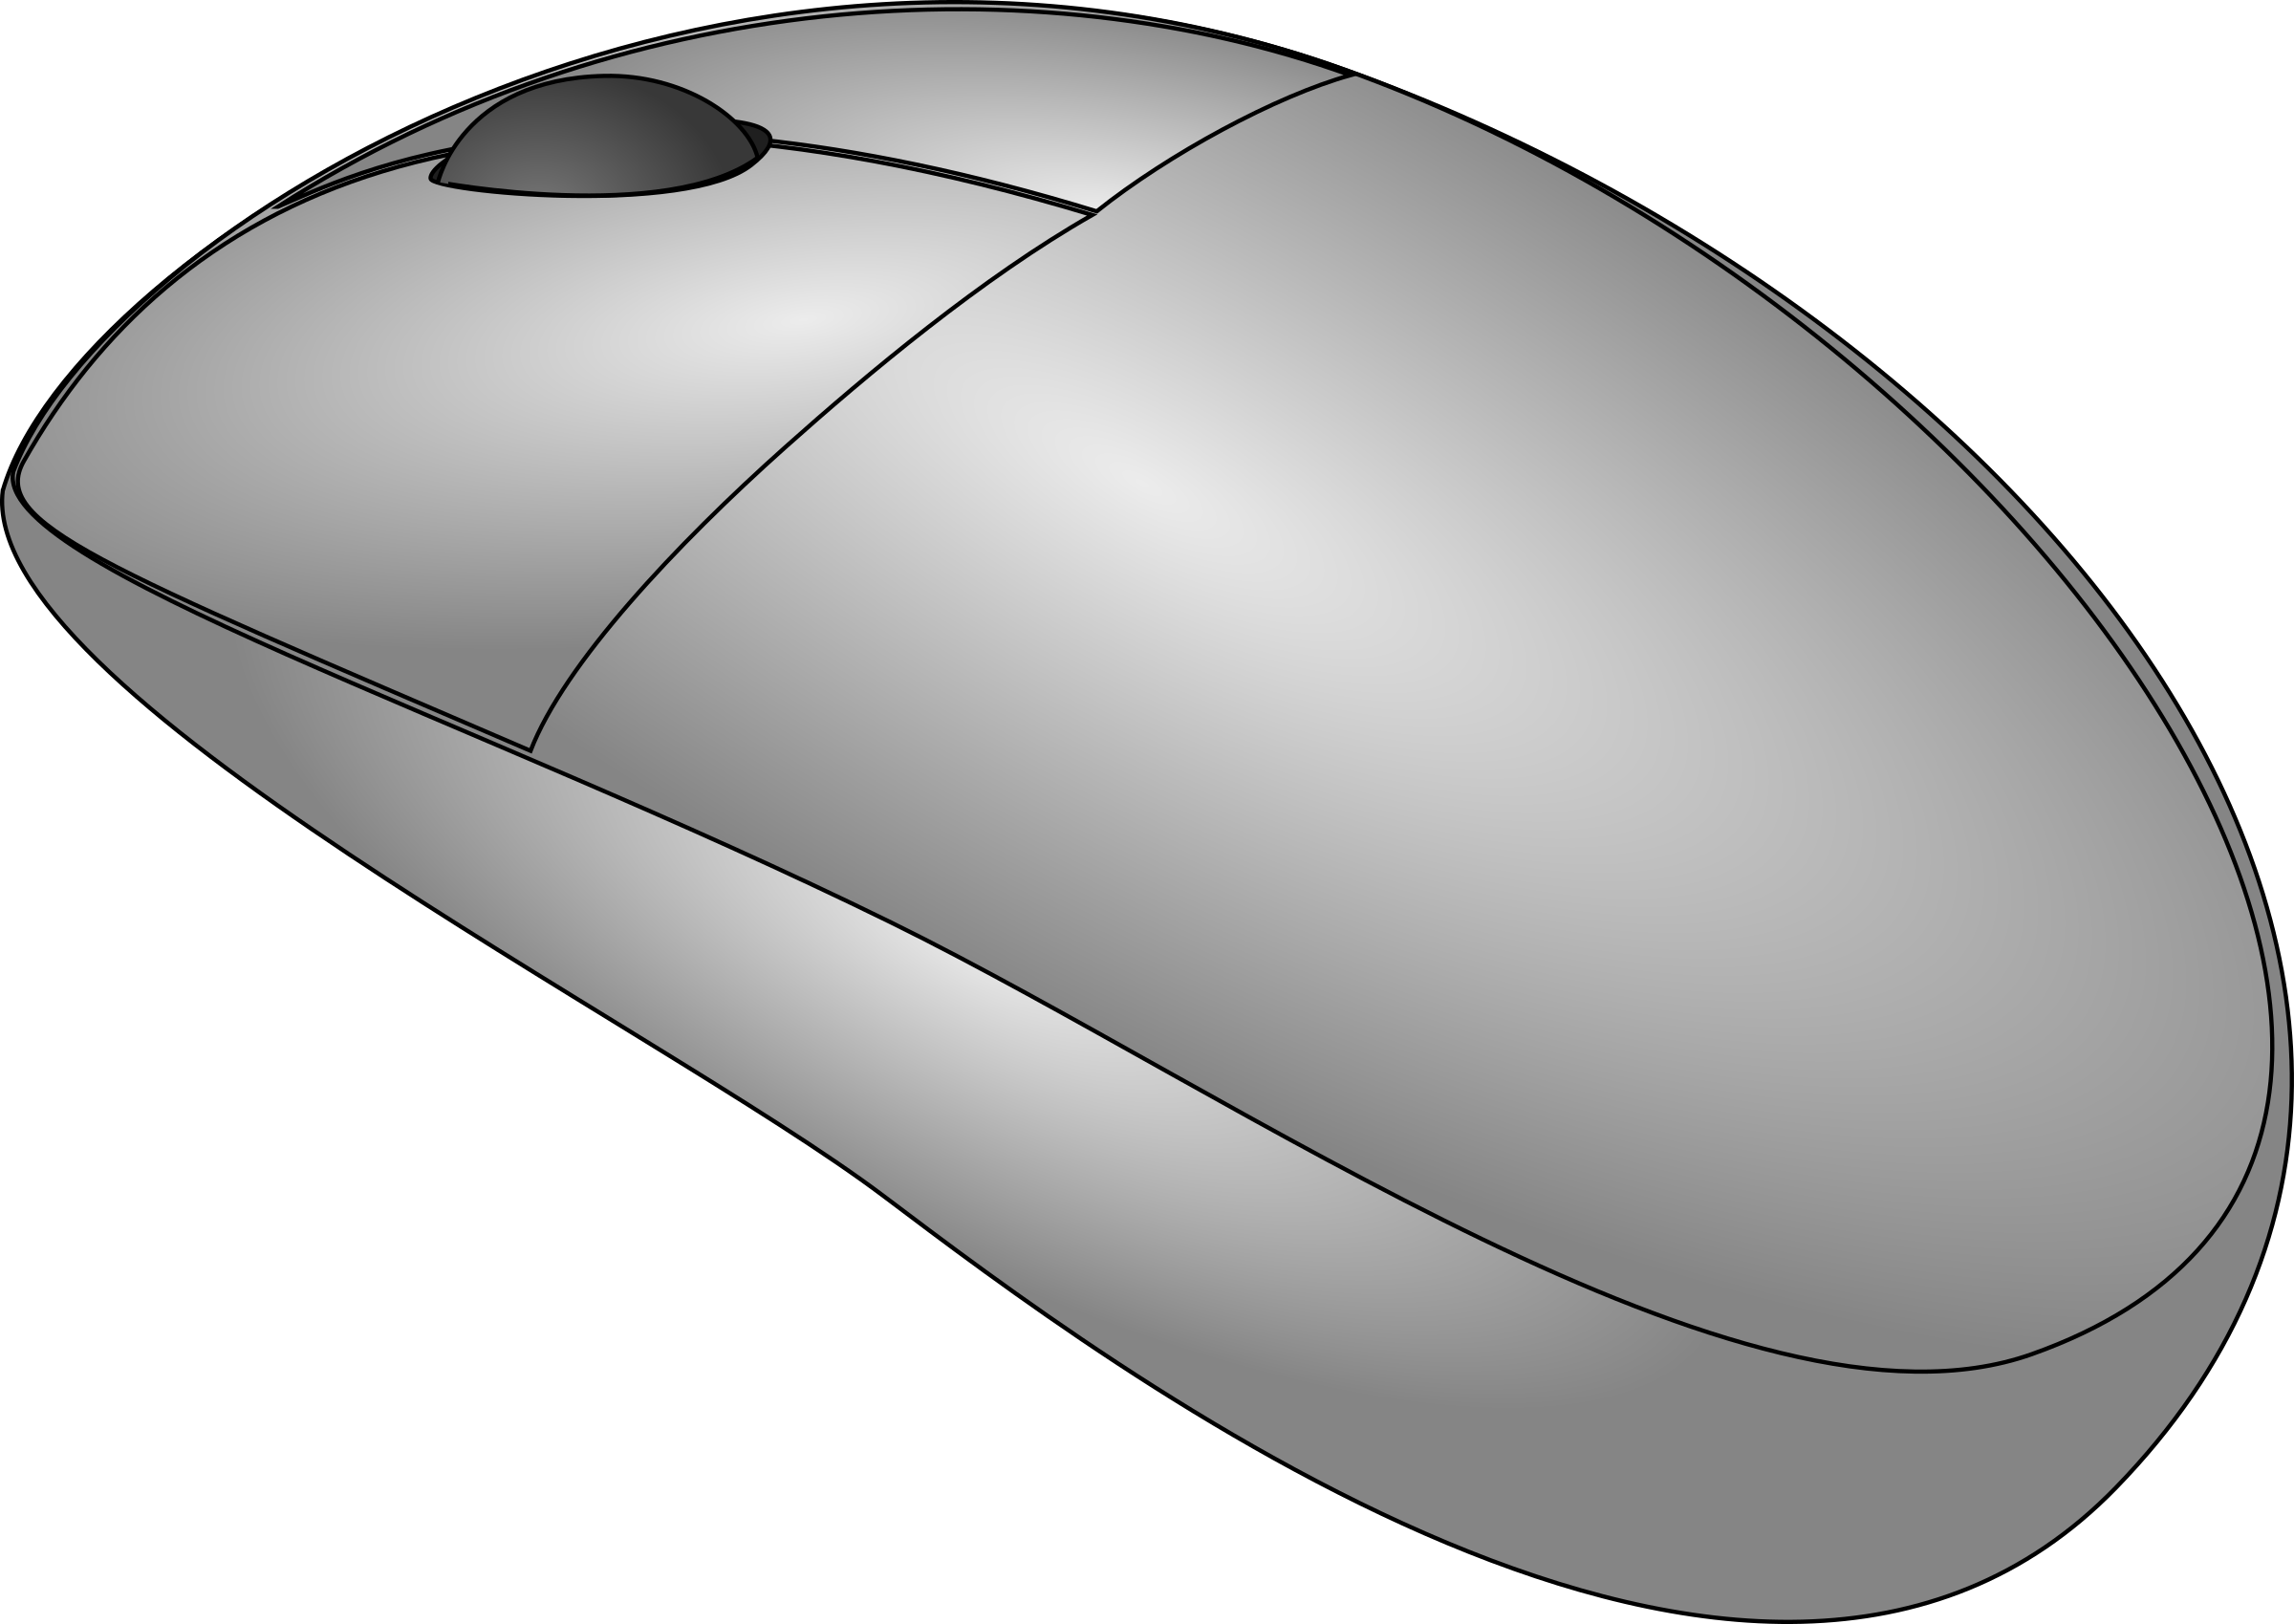 Mouse clipart computer, Mouse computer Transparent FREE for.